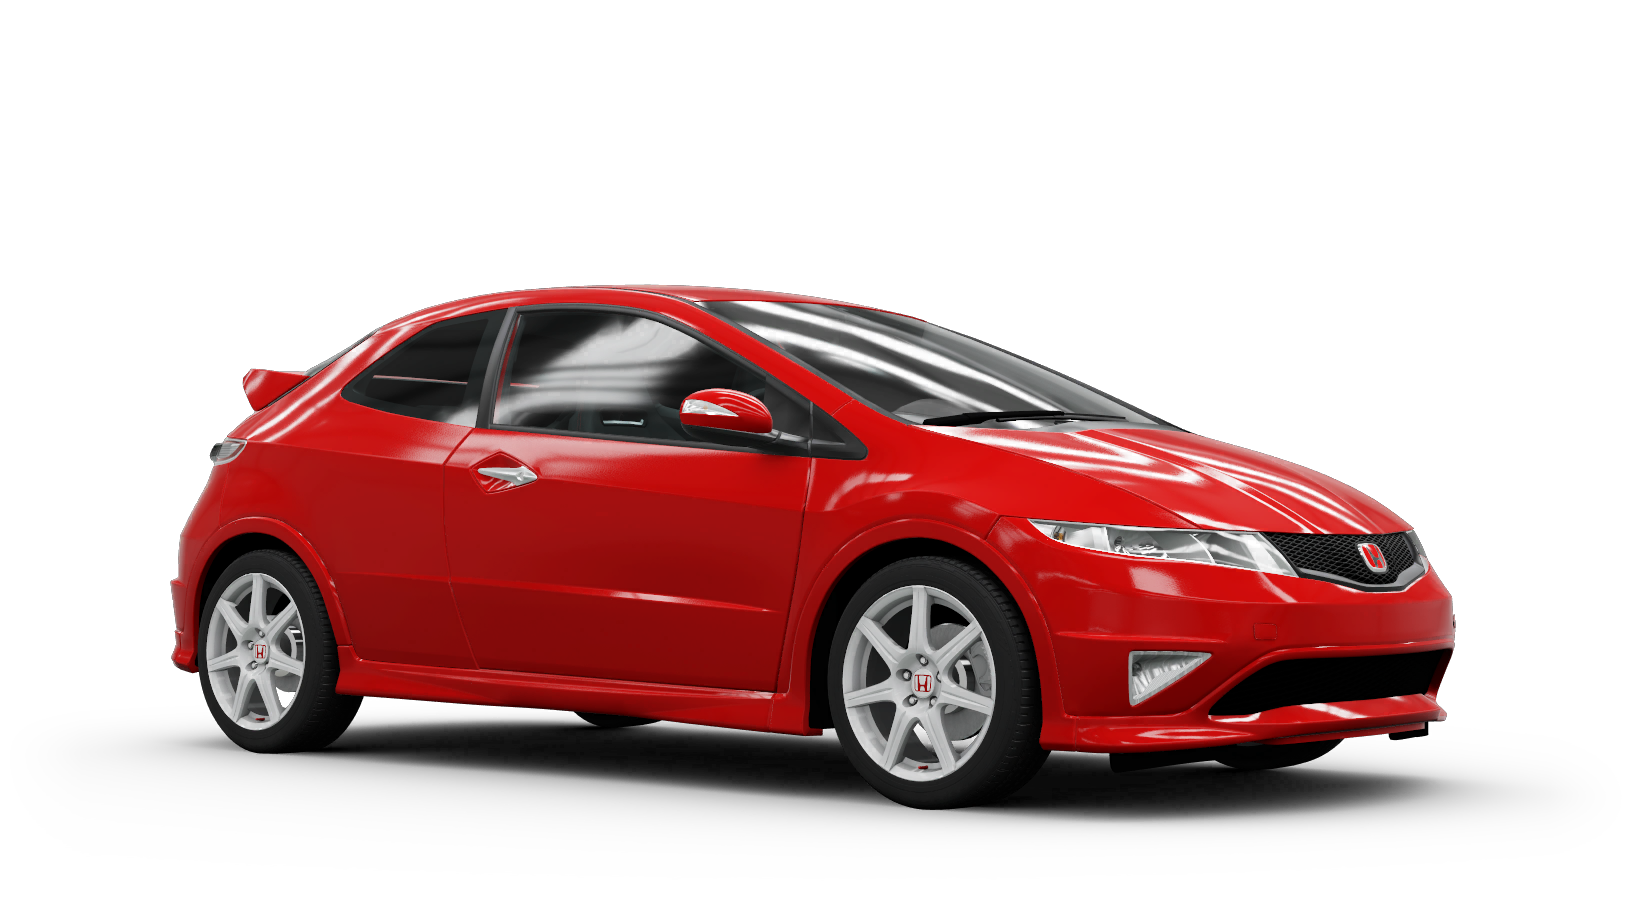 Honda Civic Type-R (2007)